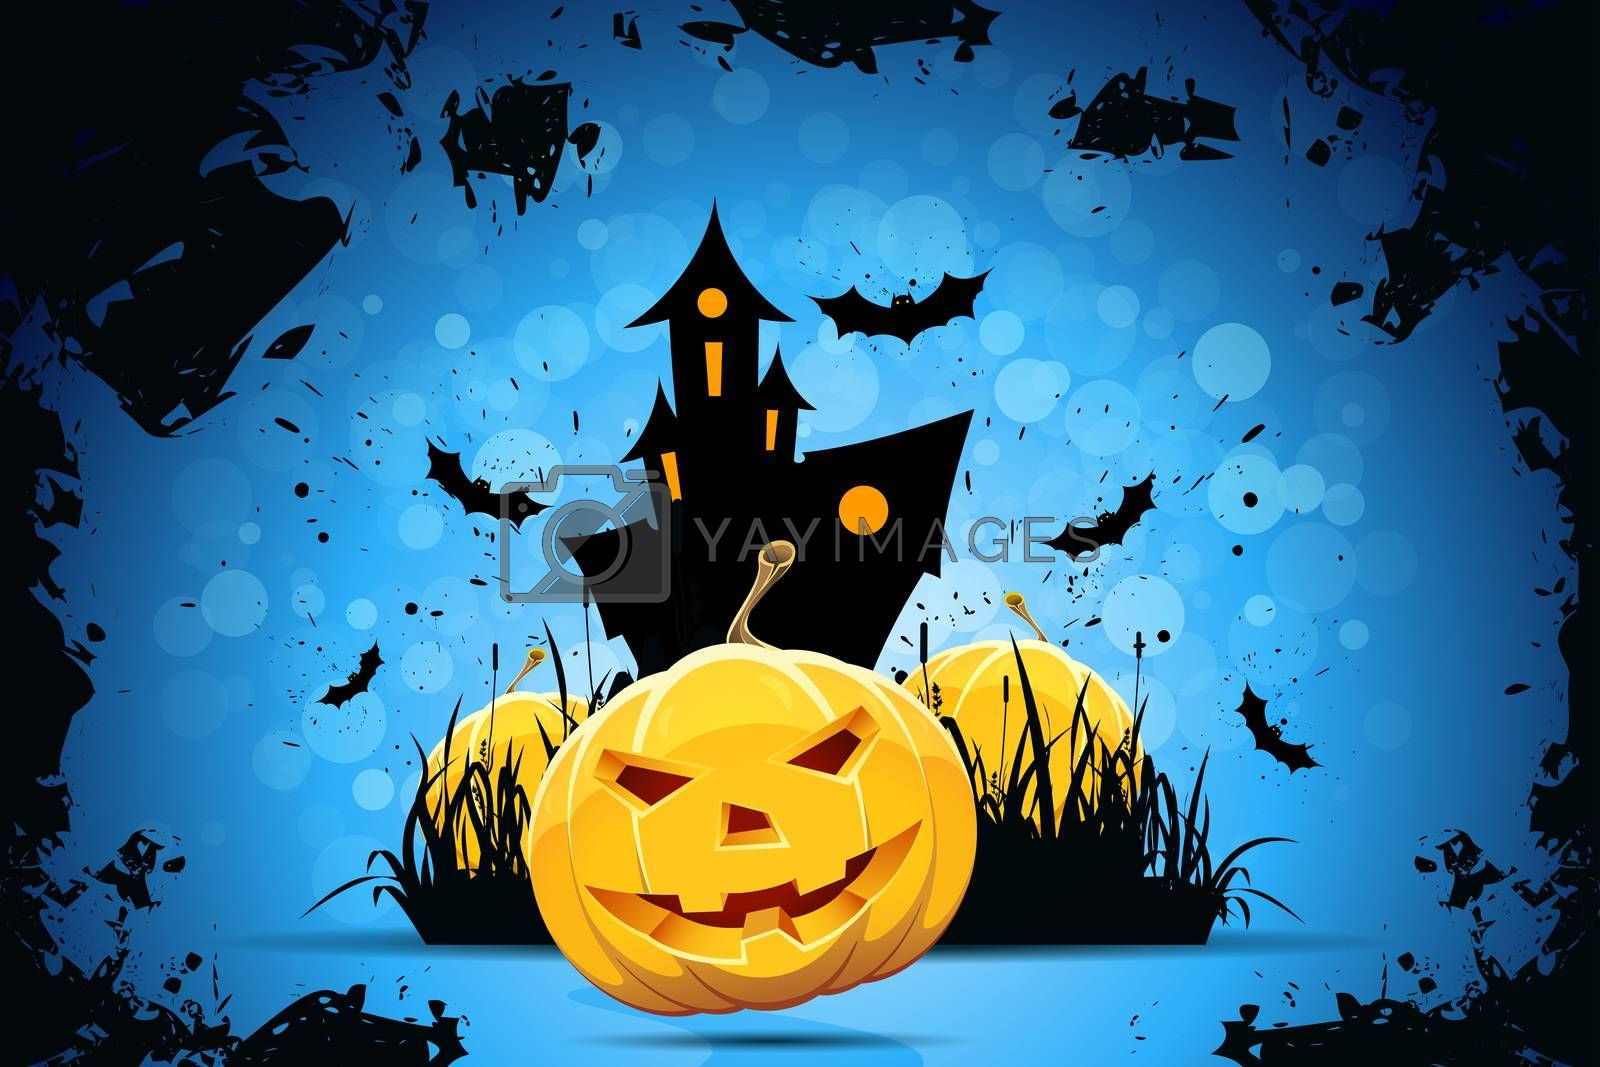 Grunge Halloween Party Background with Pampkins, House in Grass and Bats